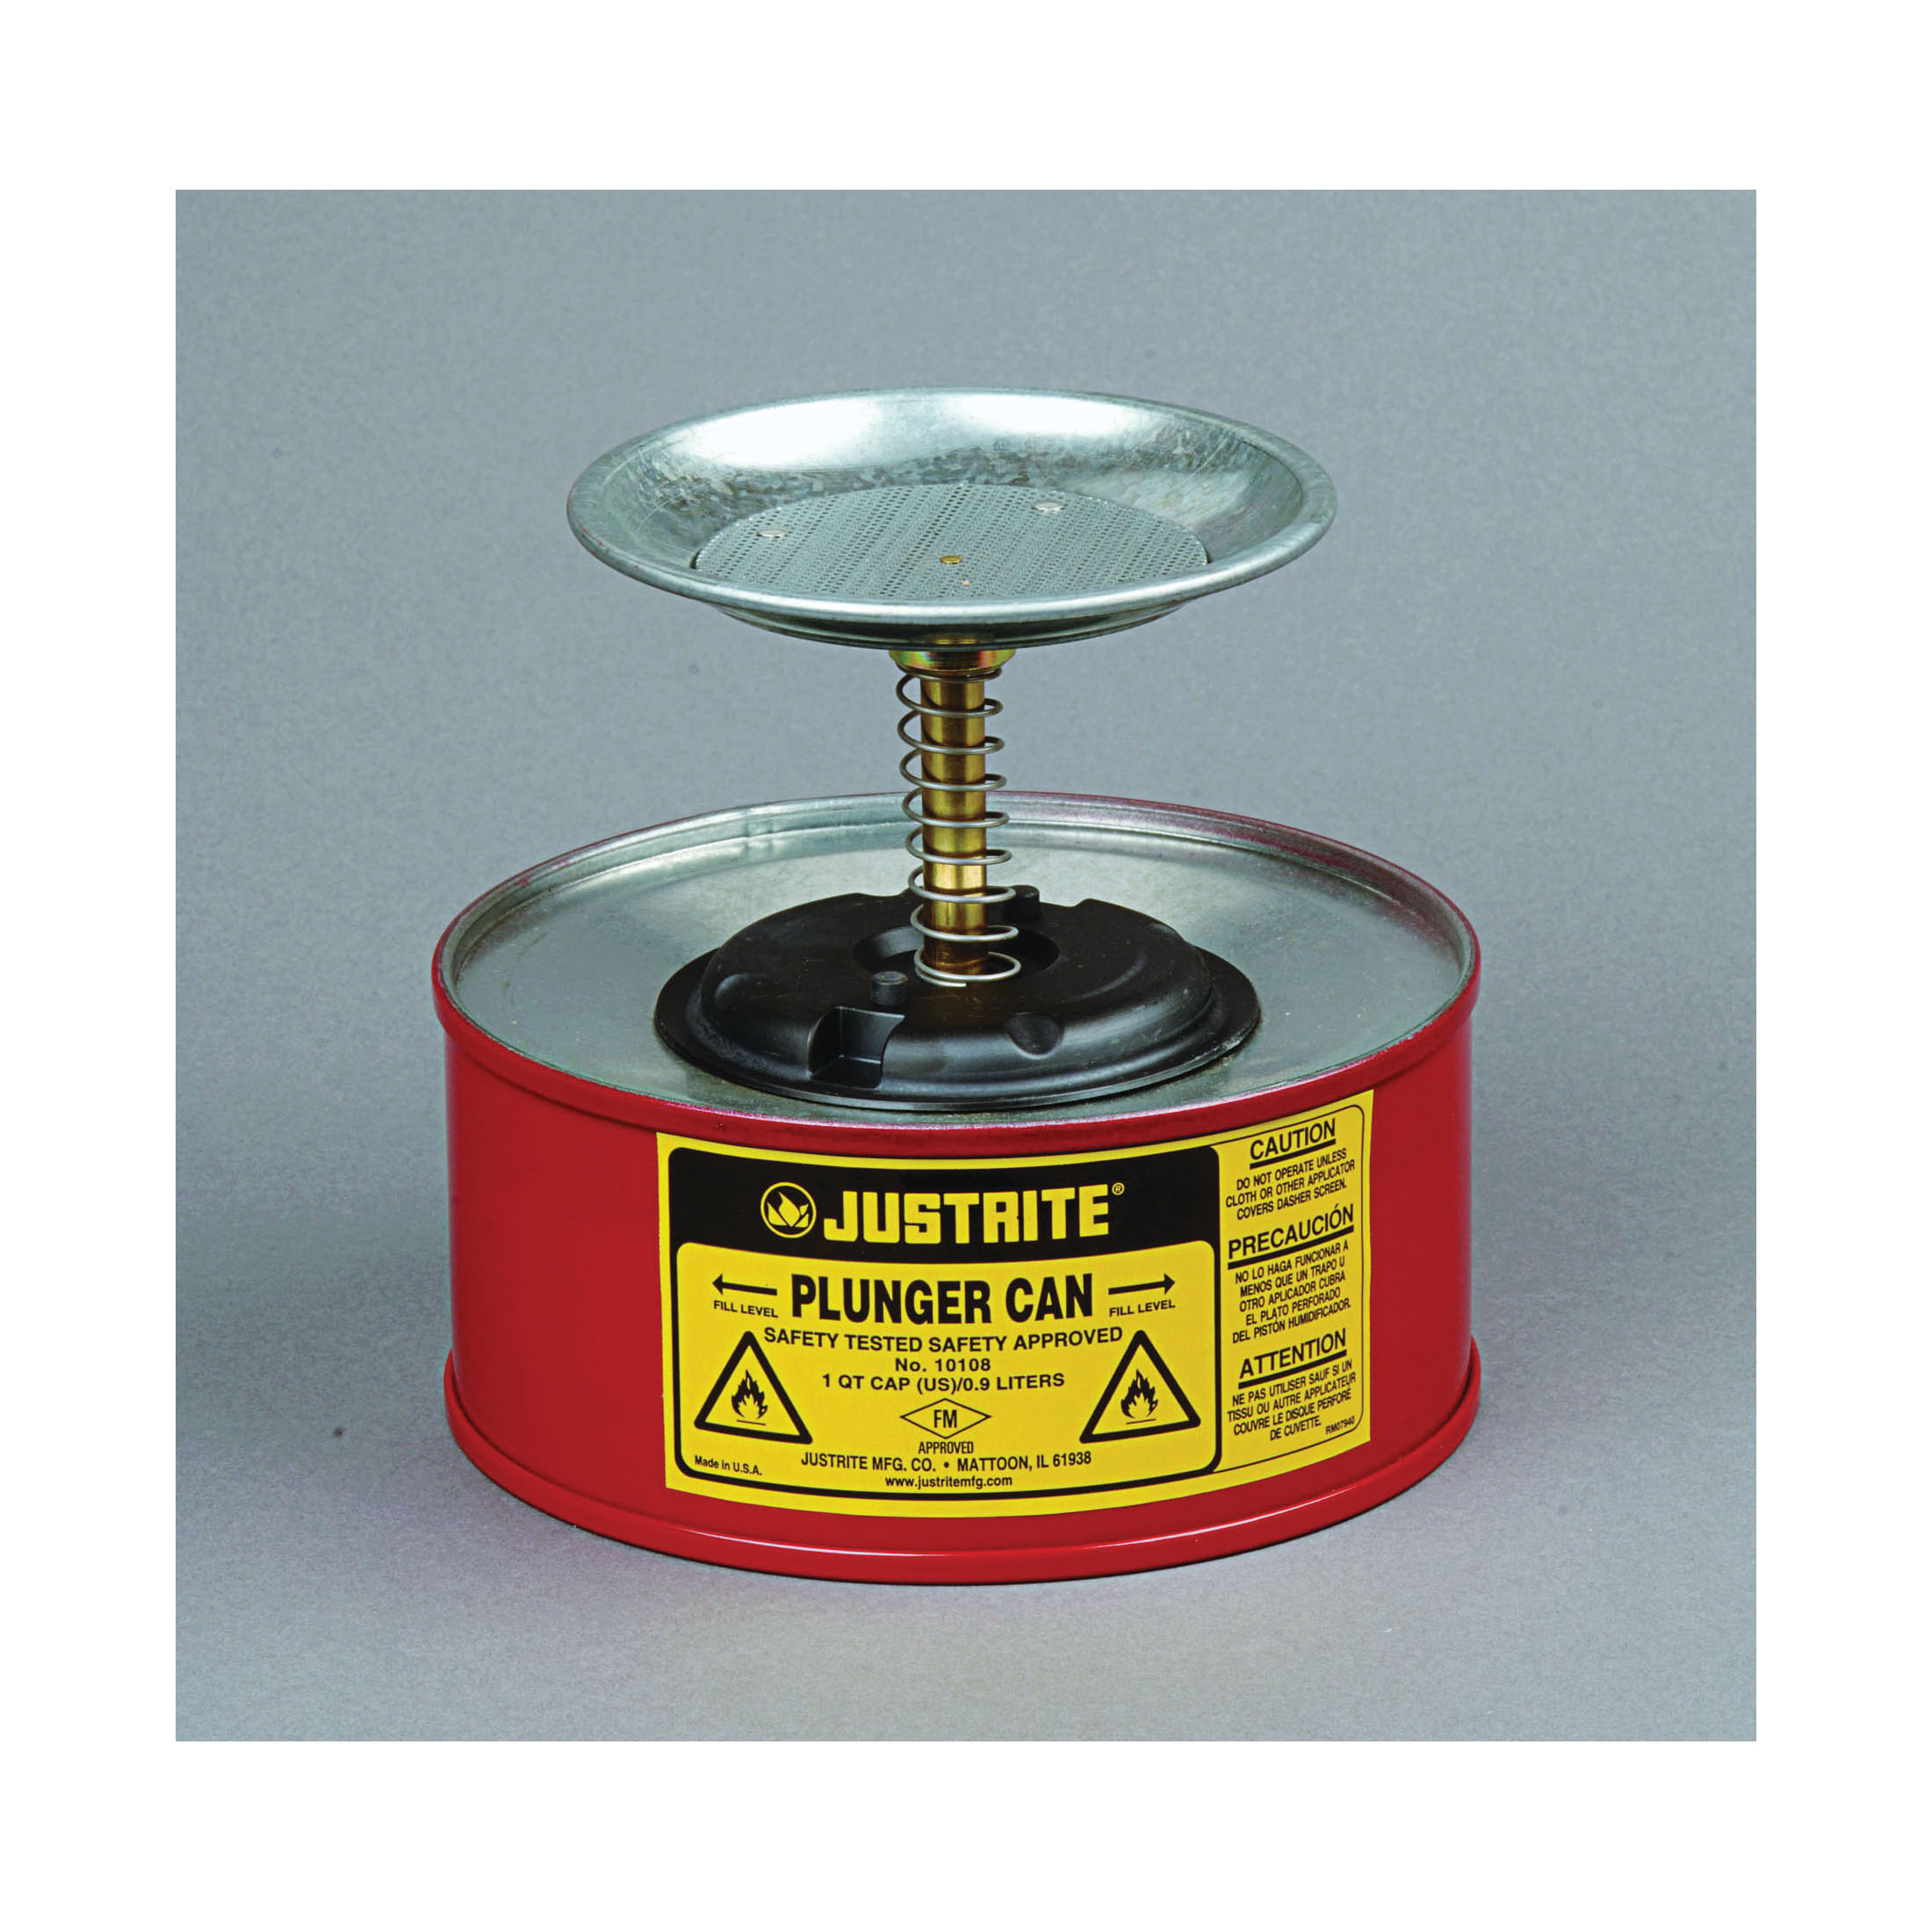 Justrite® 10108 Plunger Dispensing Can, 1 qt, Steel, Red, Brass/Ryton® Plunger, 5 in Dia Dasher Plate